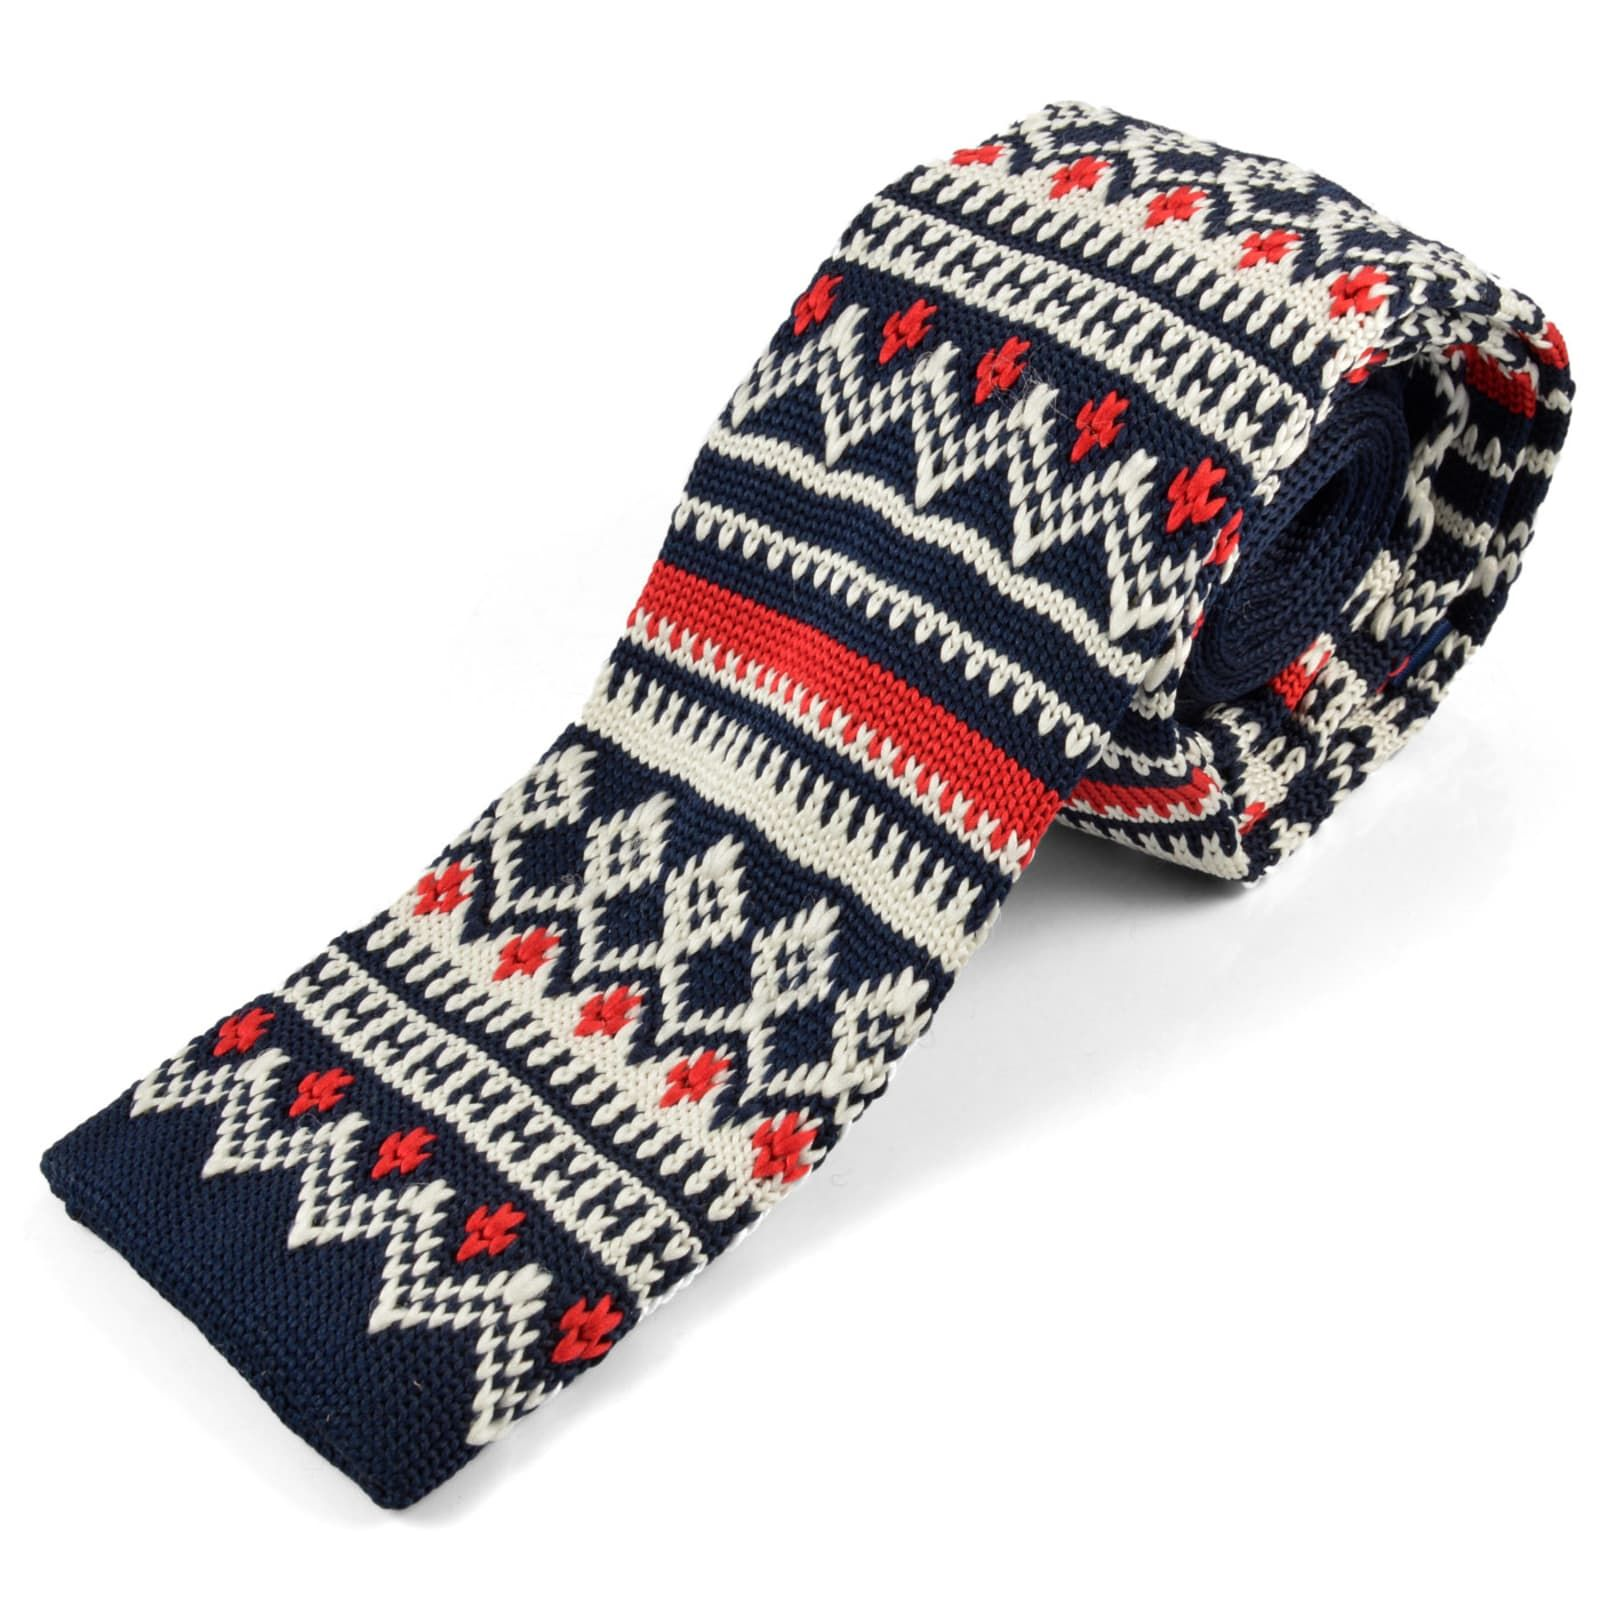 Photo of Winter Knitted Tie | Tailor Toki | 365 day return policy